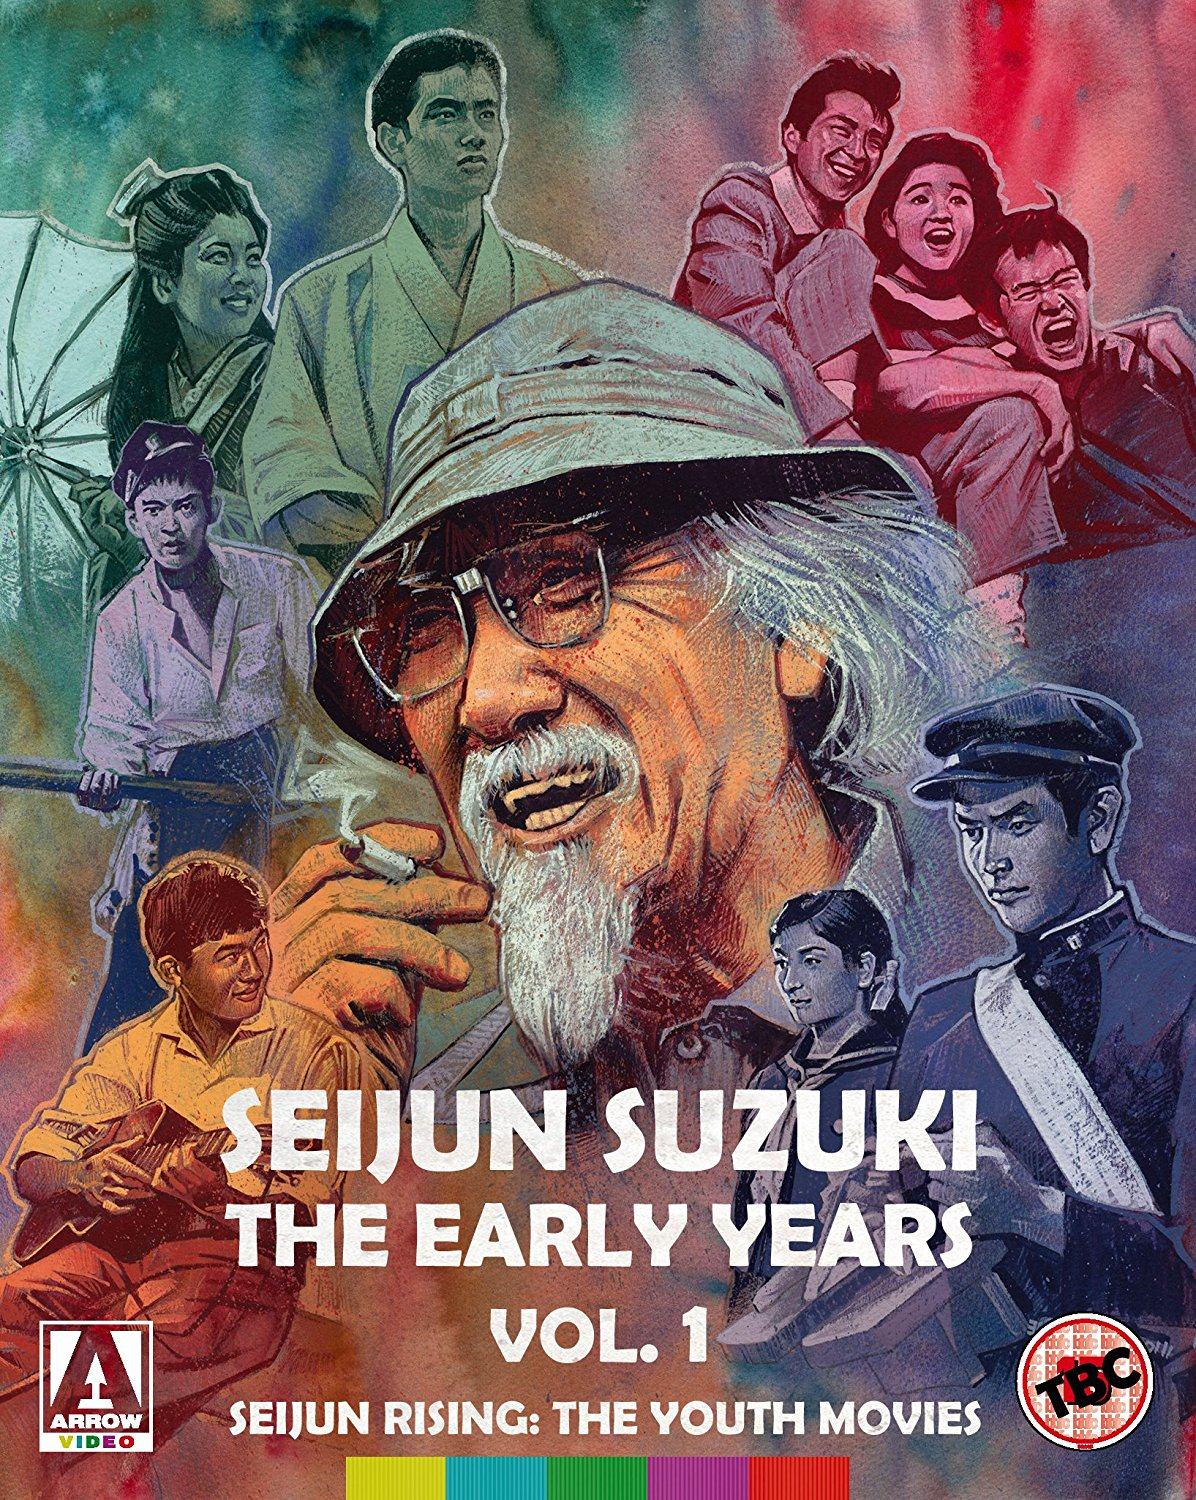 Buy Seijun Suzuki: The Early Years Vol 1 Seijun Rising